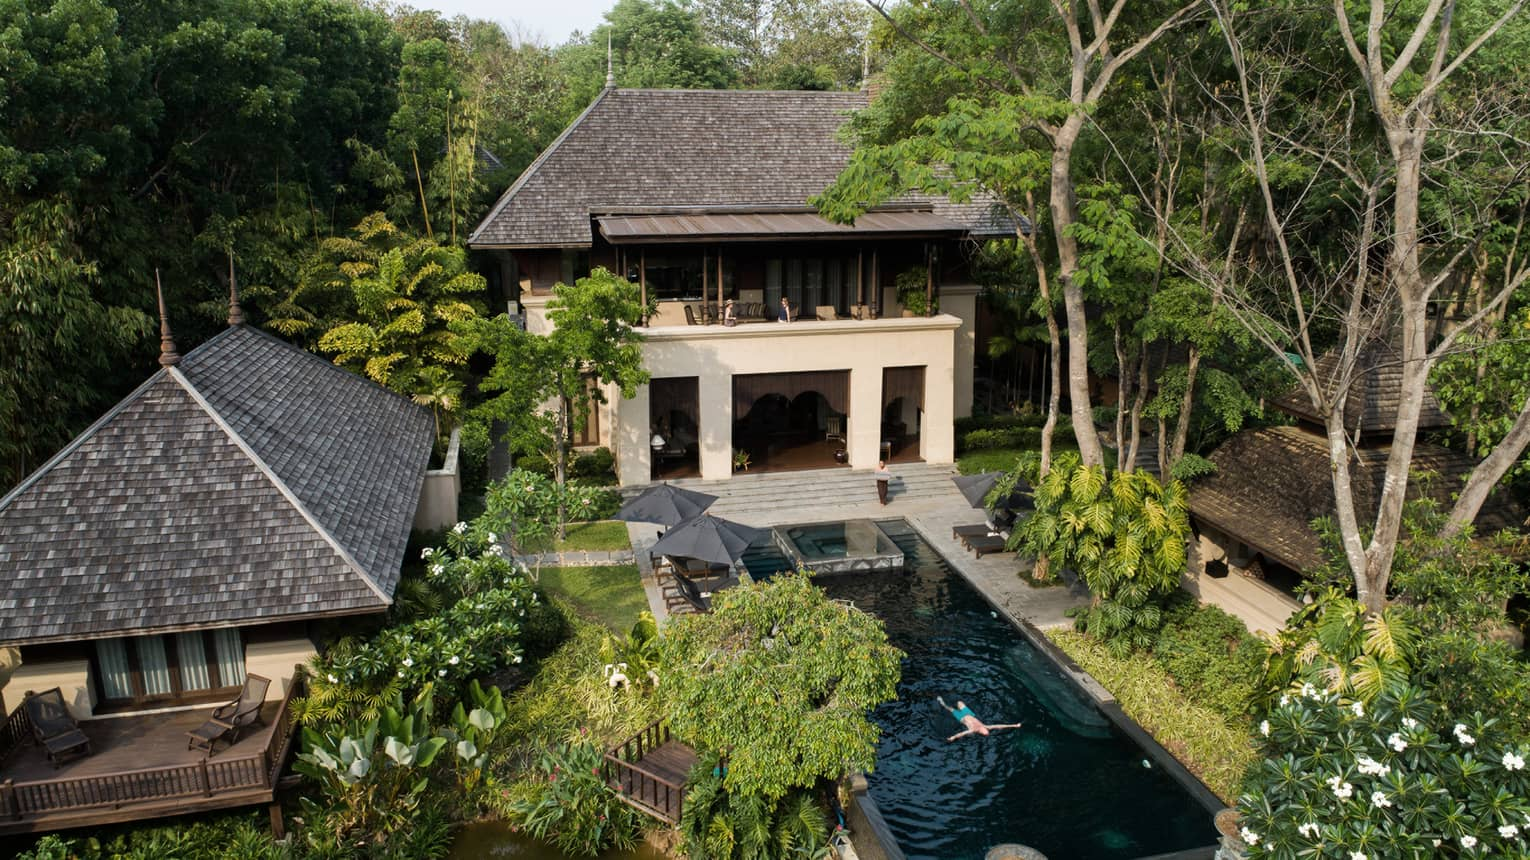 View over large villa exterior, outdoor swimming pool where man floats in water